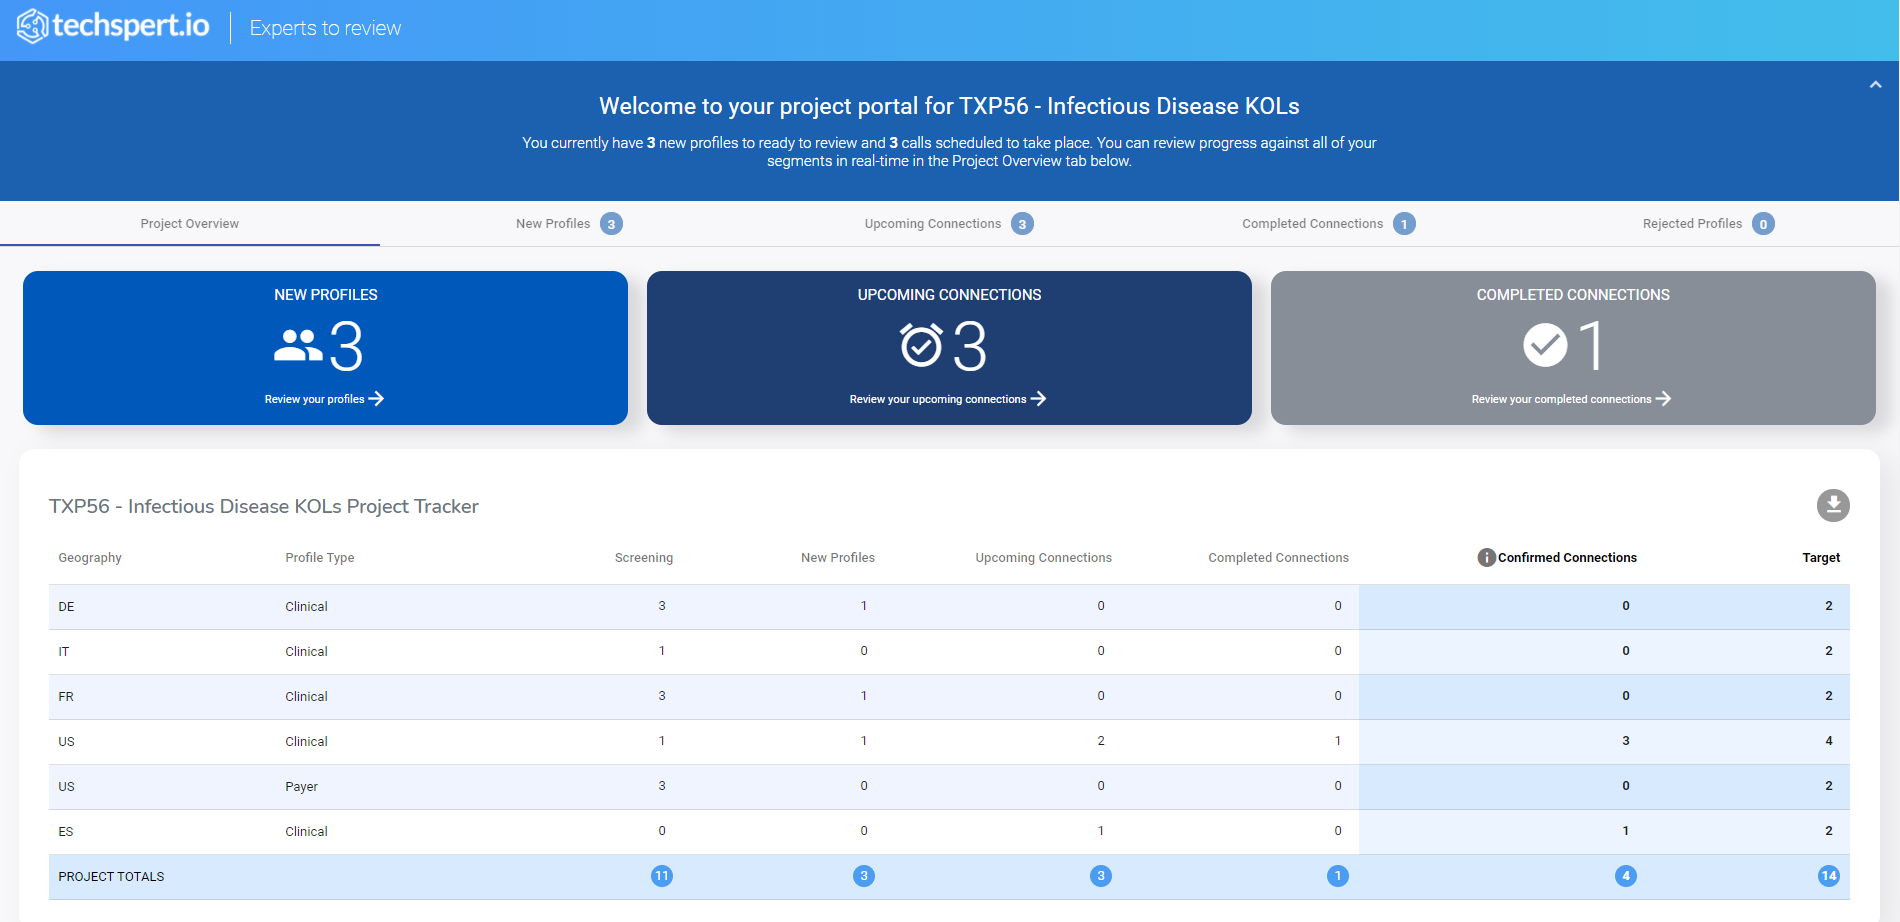 A screenshot of the project portal dashboard